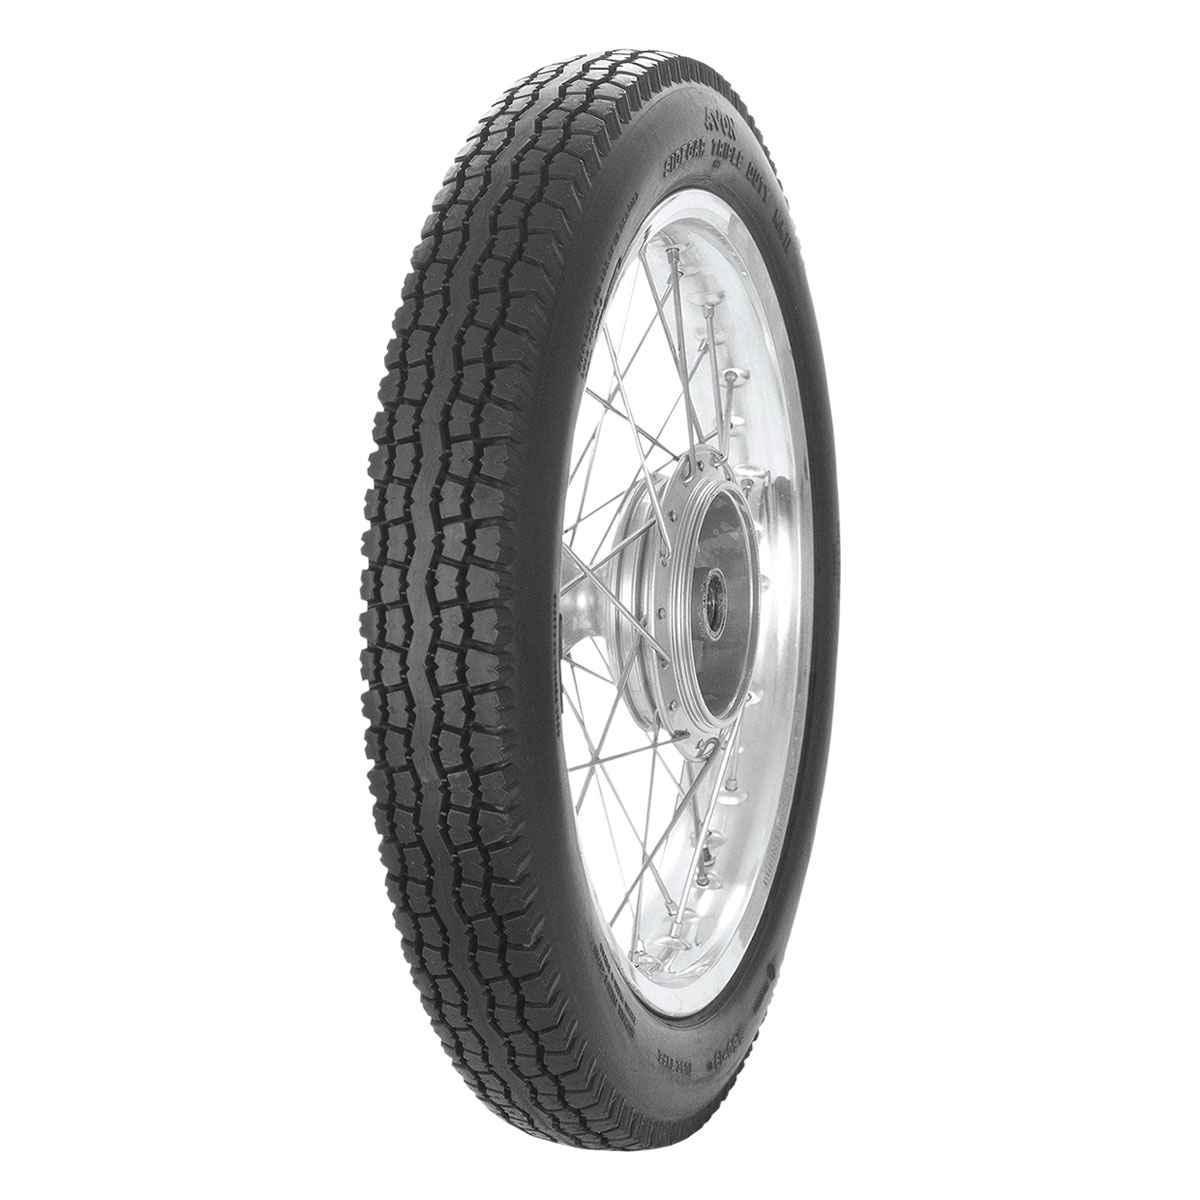 Avon Sidecar Triple Duty MK II 3.50-19 Tire